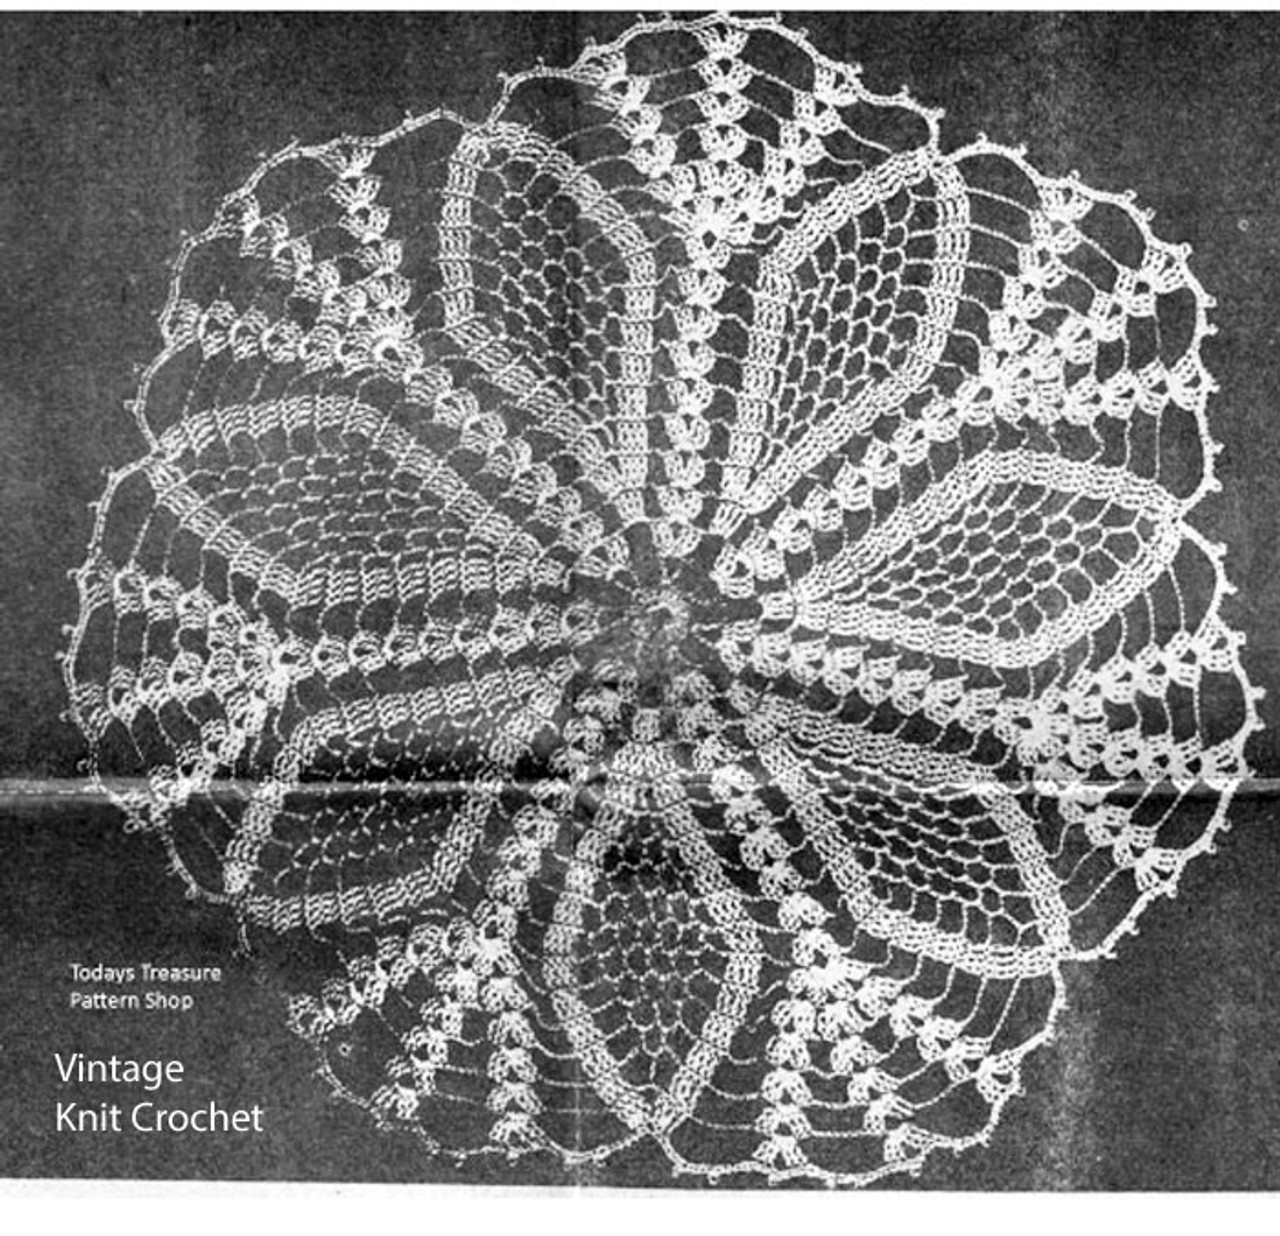 Vintage Pineapple Crocheted Doily Pattern No 1152